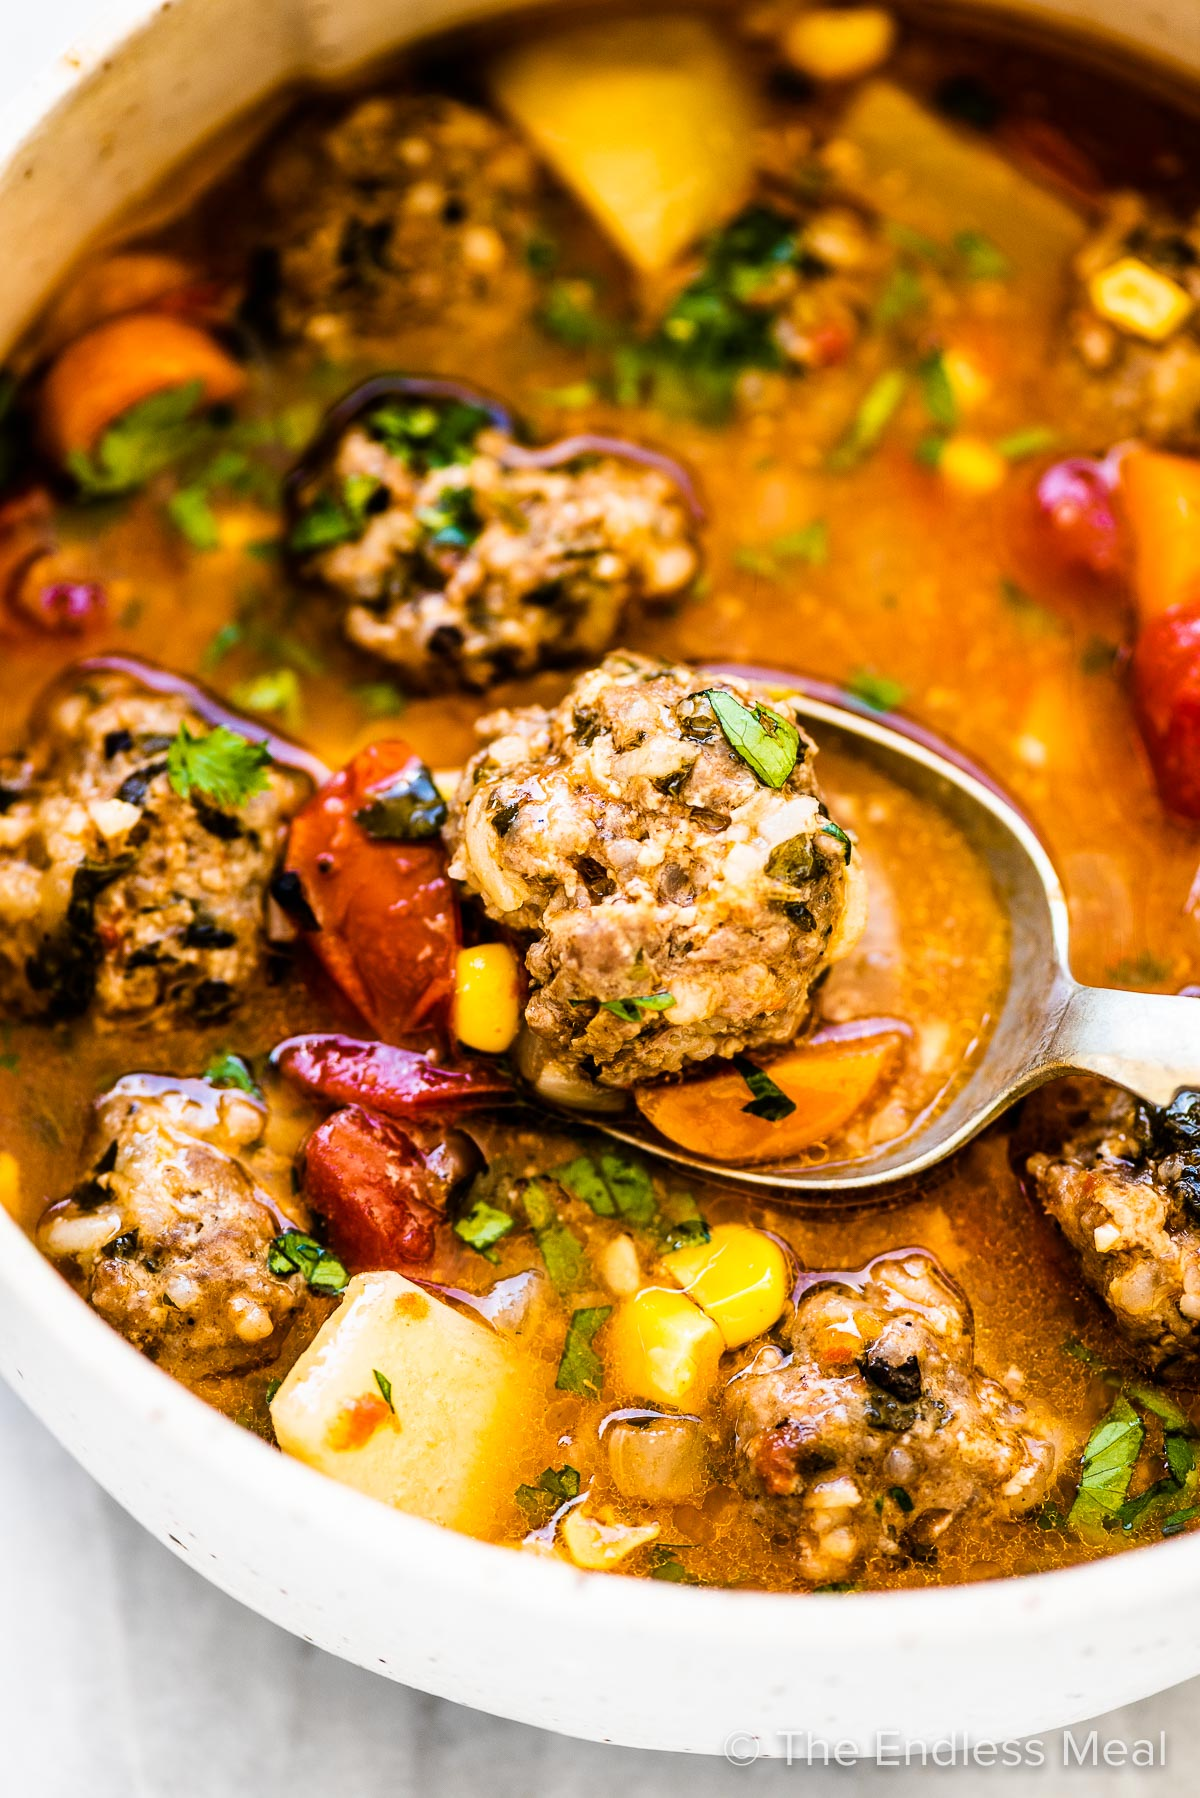 Mexican Meatball Soup (Albondigas Soup) in a white bowl with a spoon.